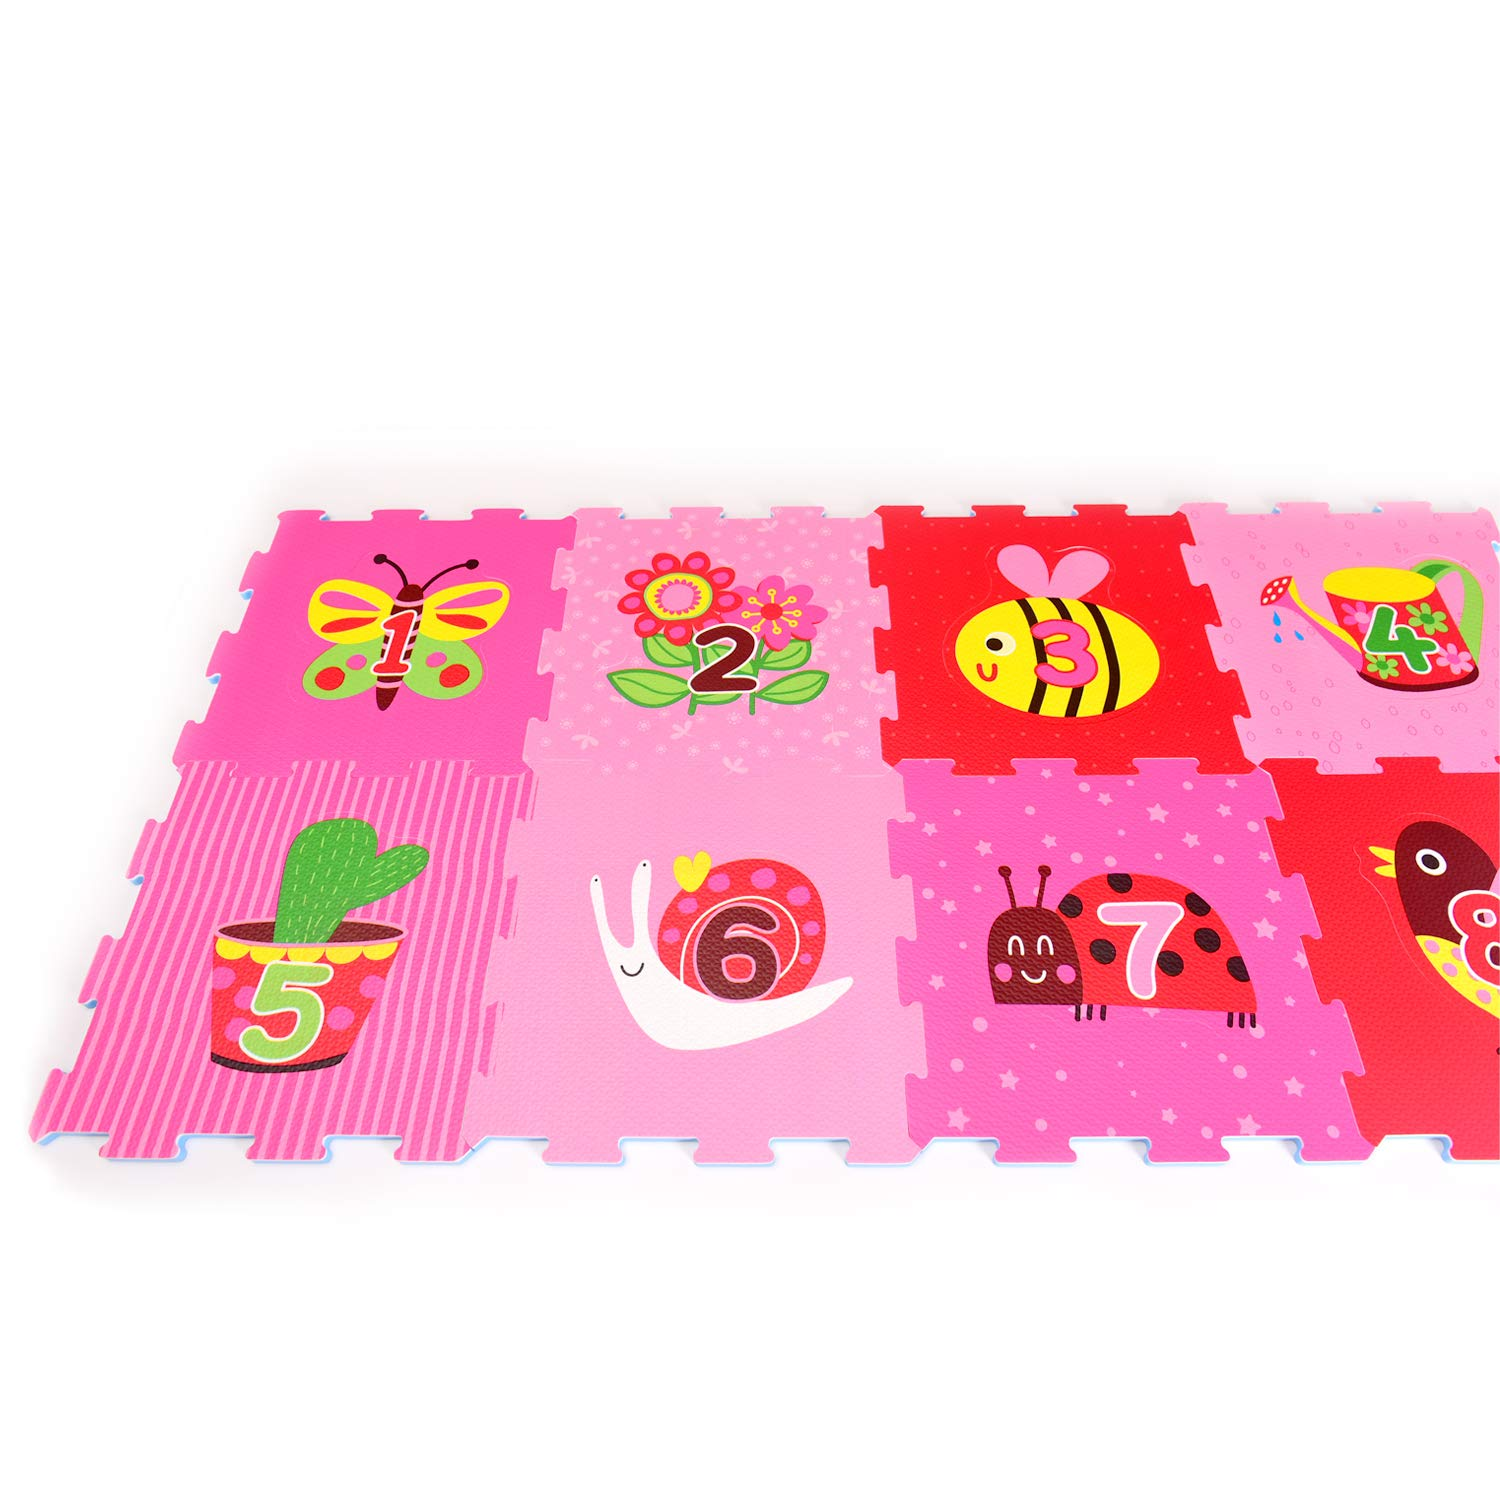 Kids Lovely Garden Rubber EVA Foam Puzzle Play mat Floor Ideal: Crawling Baby Toddler Tile:12X12 Inch//9 Sq.feet Coverage 9 Interlocking playmat Tiles Gym Workout time Infant Classroom